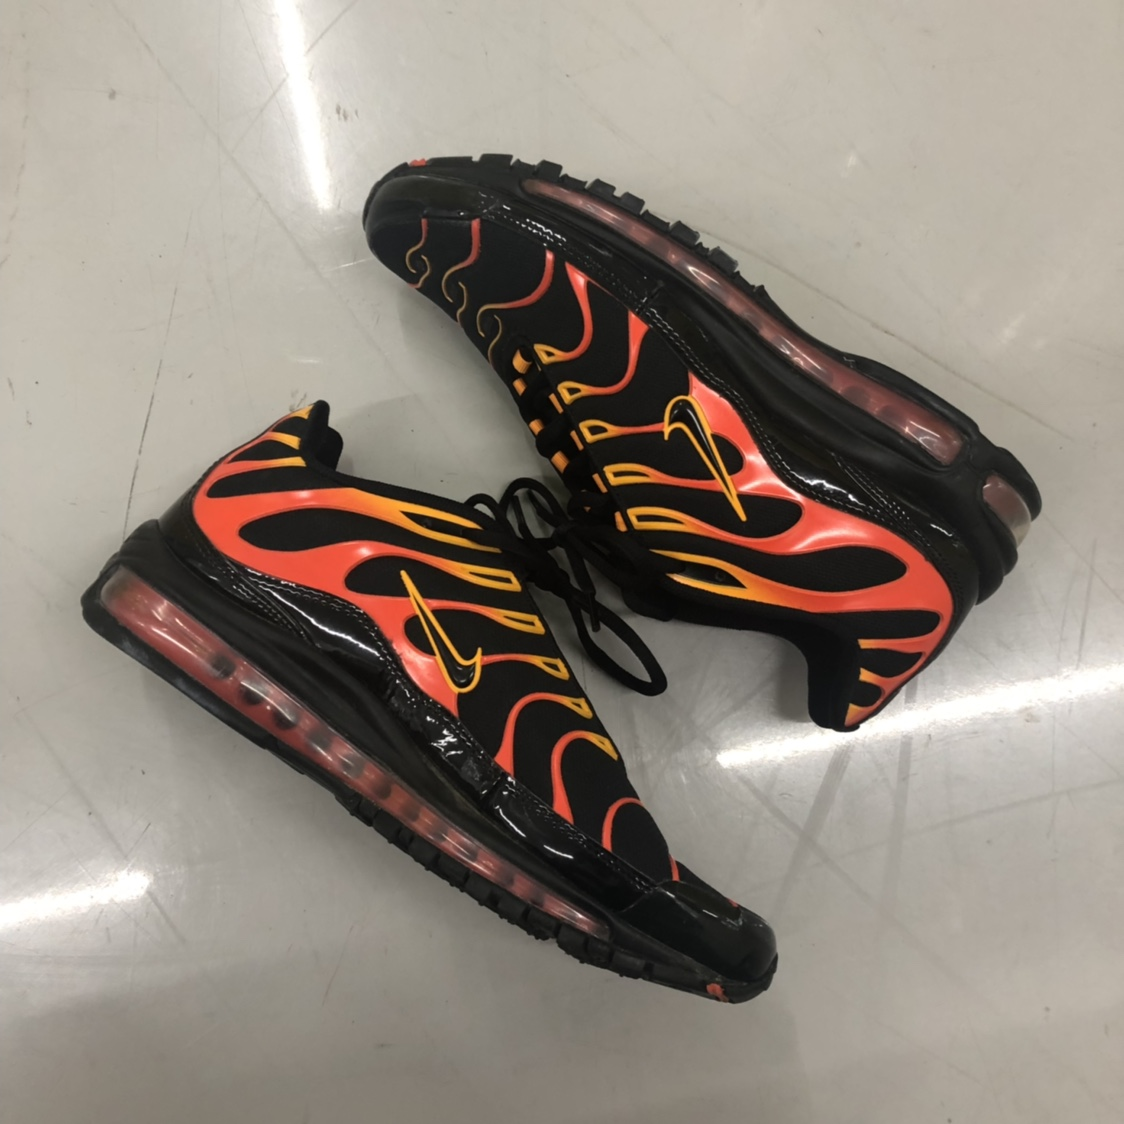 Nike Air Max 97 Plus Black Shock Orange (Worn once) Depop